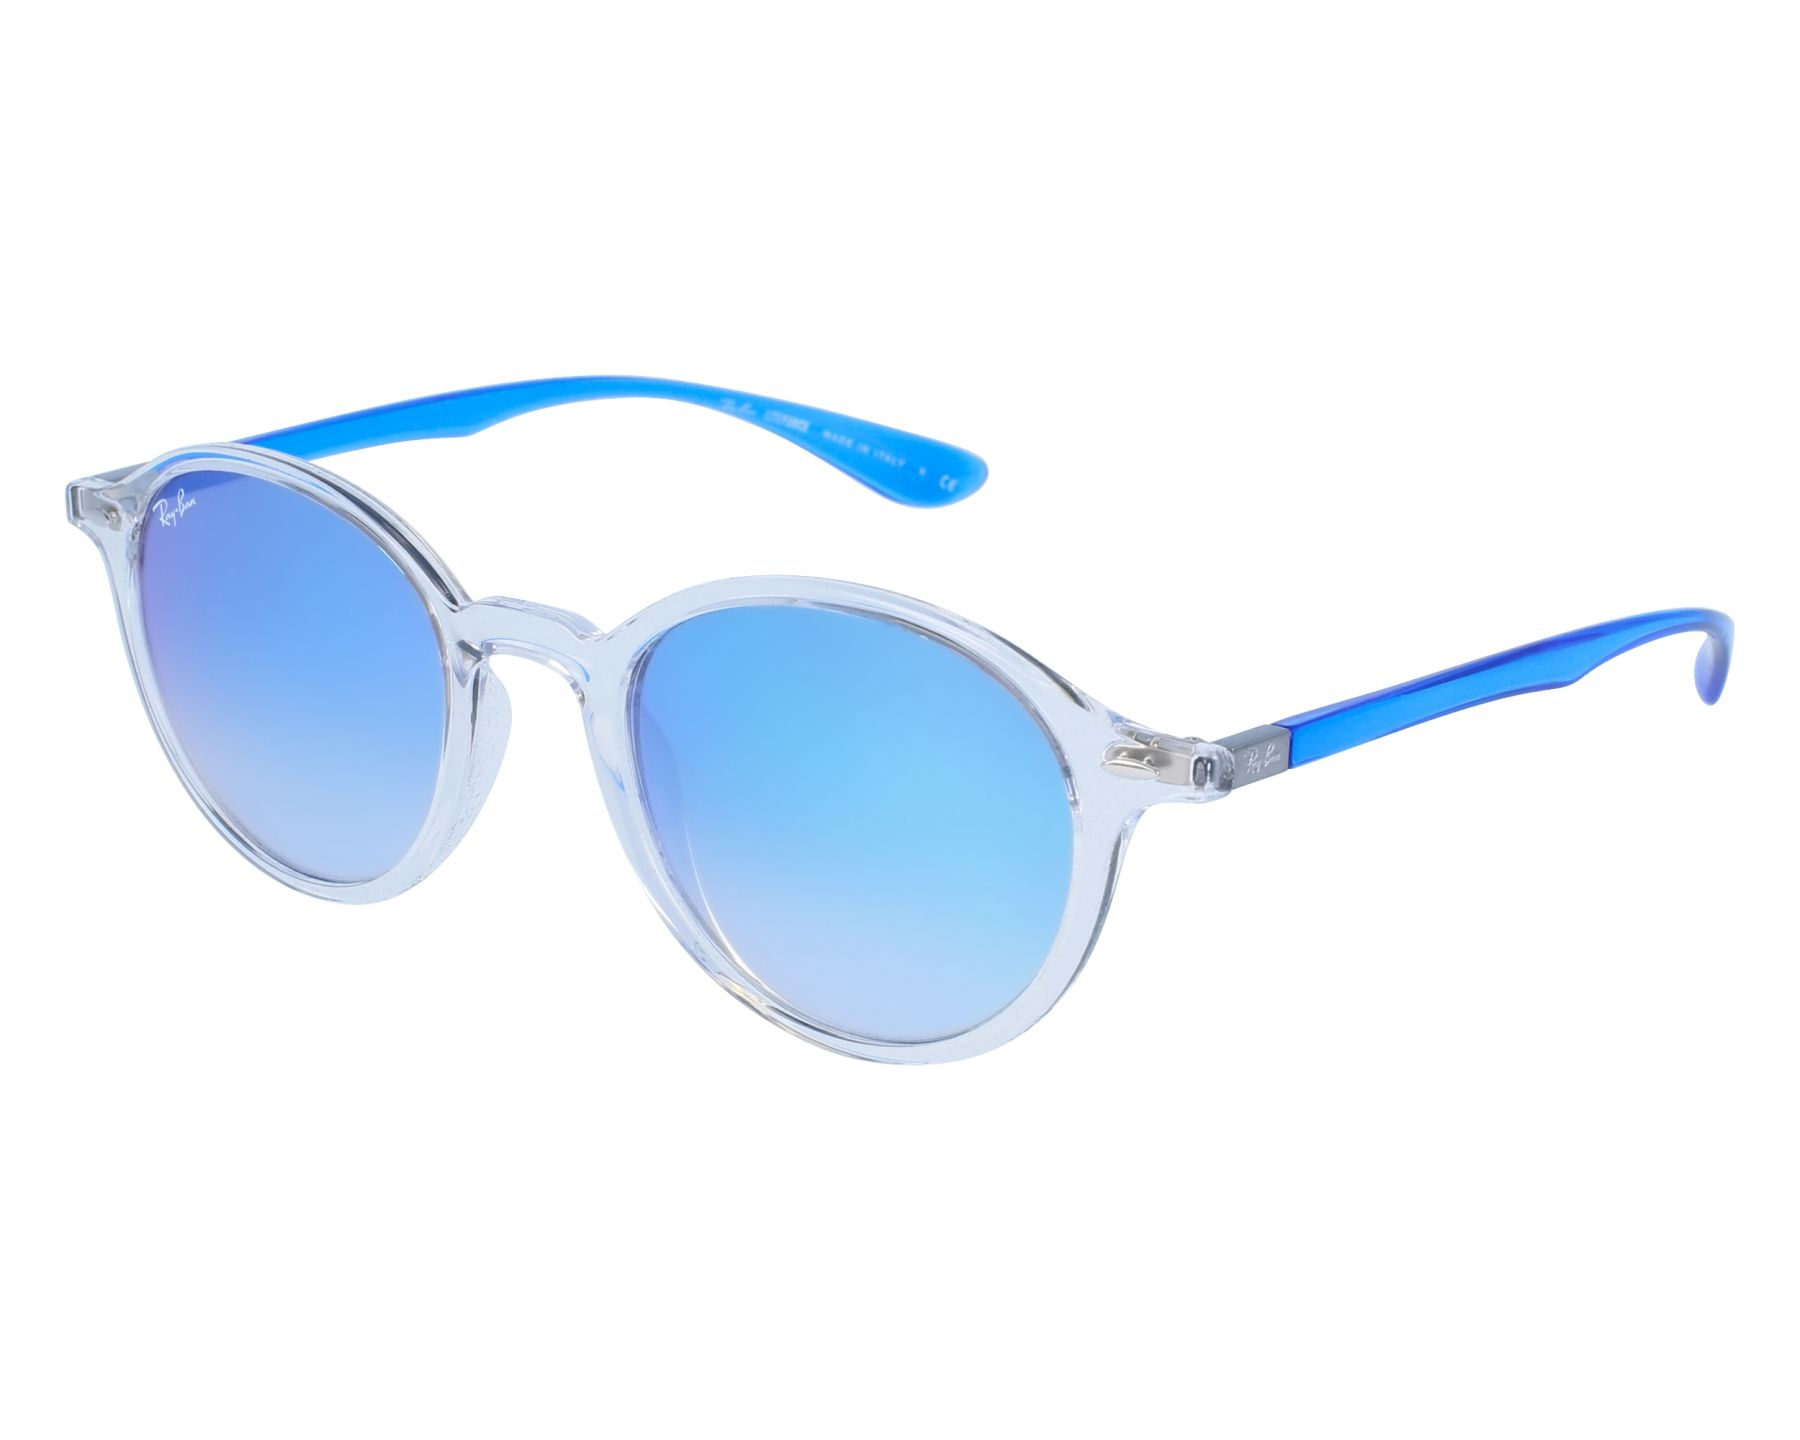 29d11579fee Sunglasses Ray-Ban RB-4237 62894O 50-21 White Blue front view